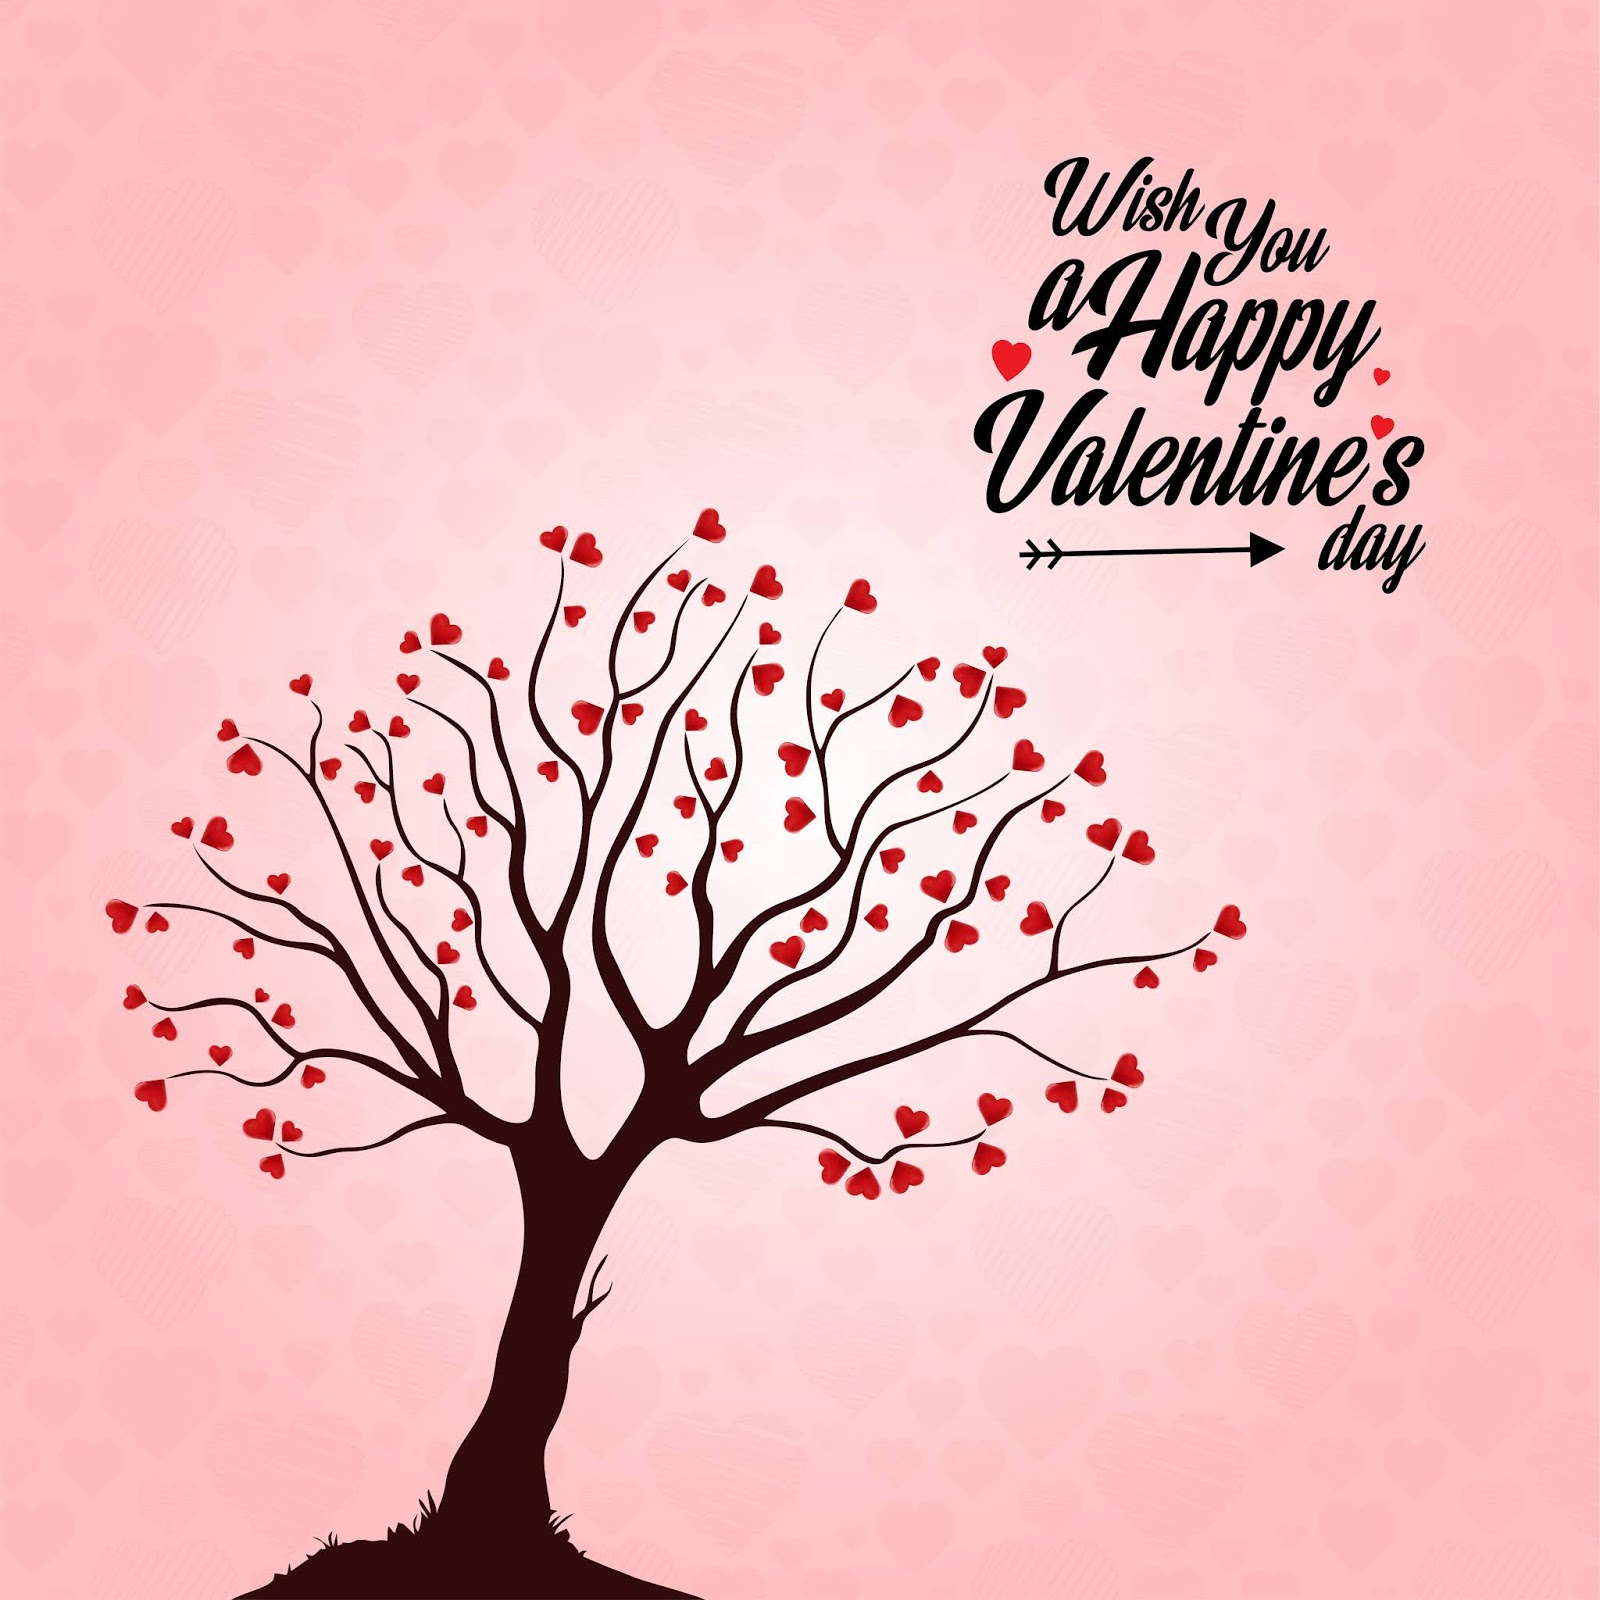 Wish You A Happy Valentine S Day Heart Tree Free Download Vector CDR, AI, EPS and PNG Formats